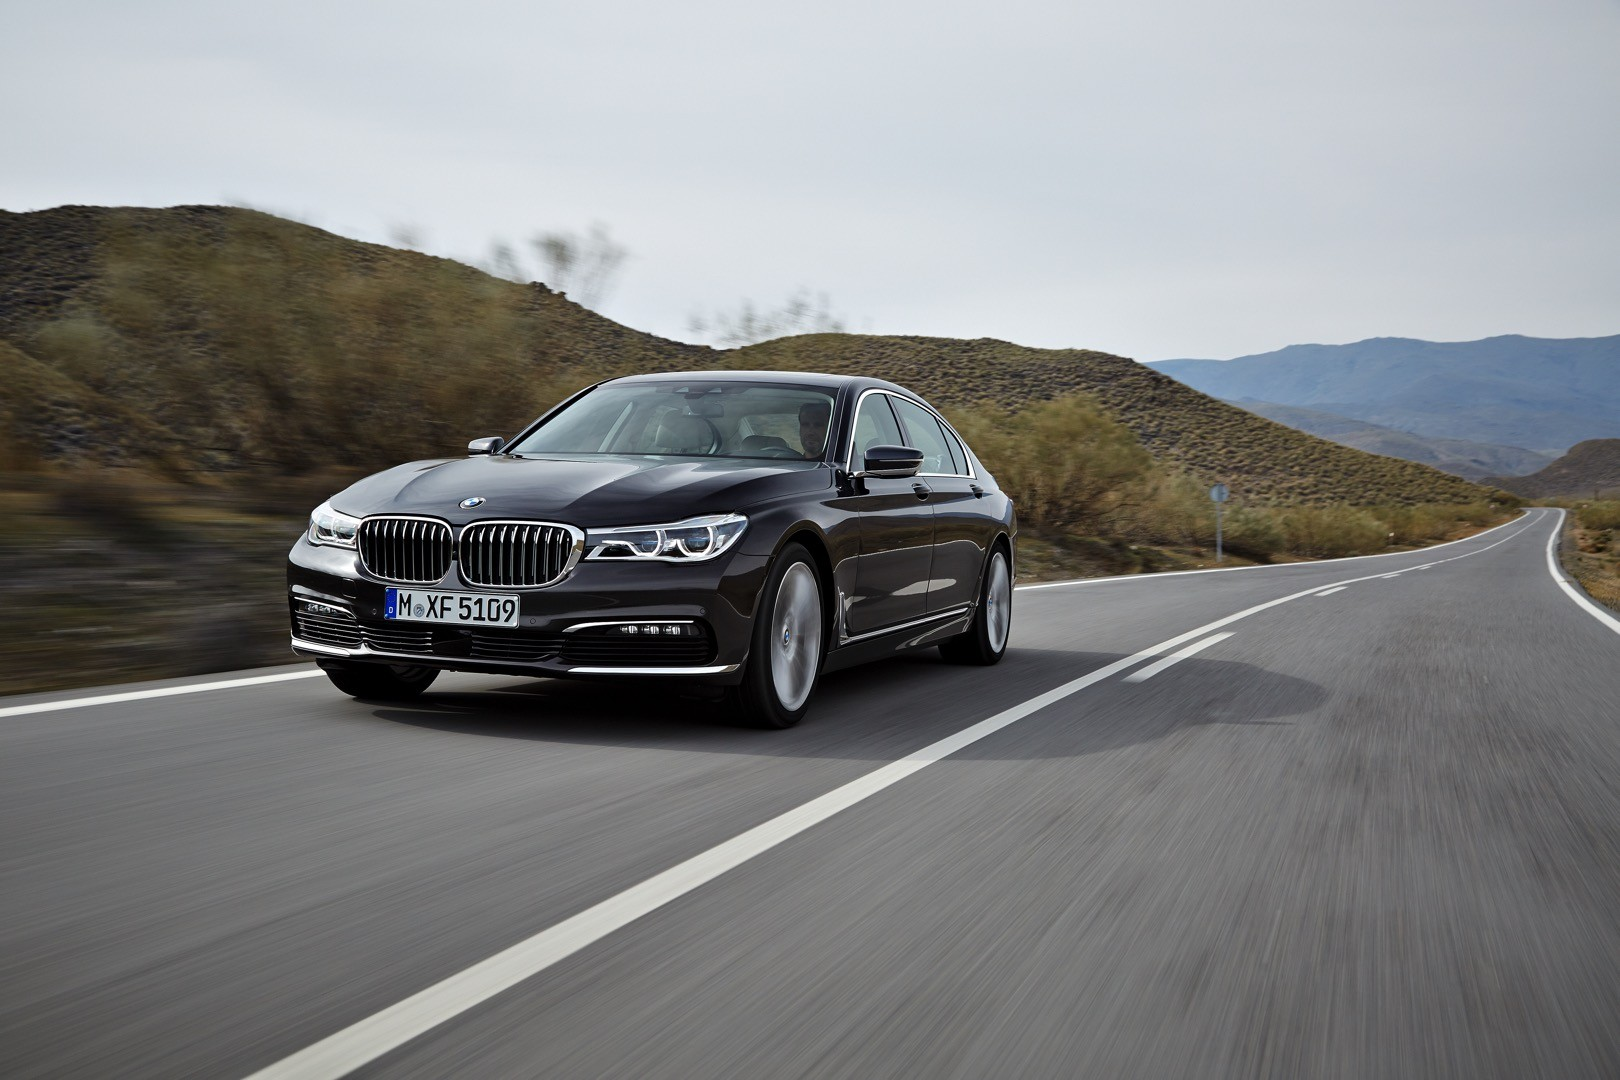 2016-bmw-7-series-finally-officially-unveiled-the-good-stuffs-inside-photo-gallery_8